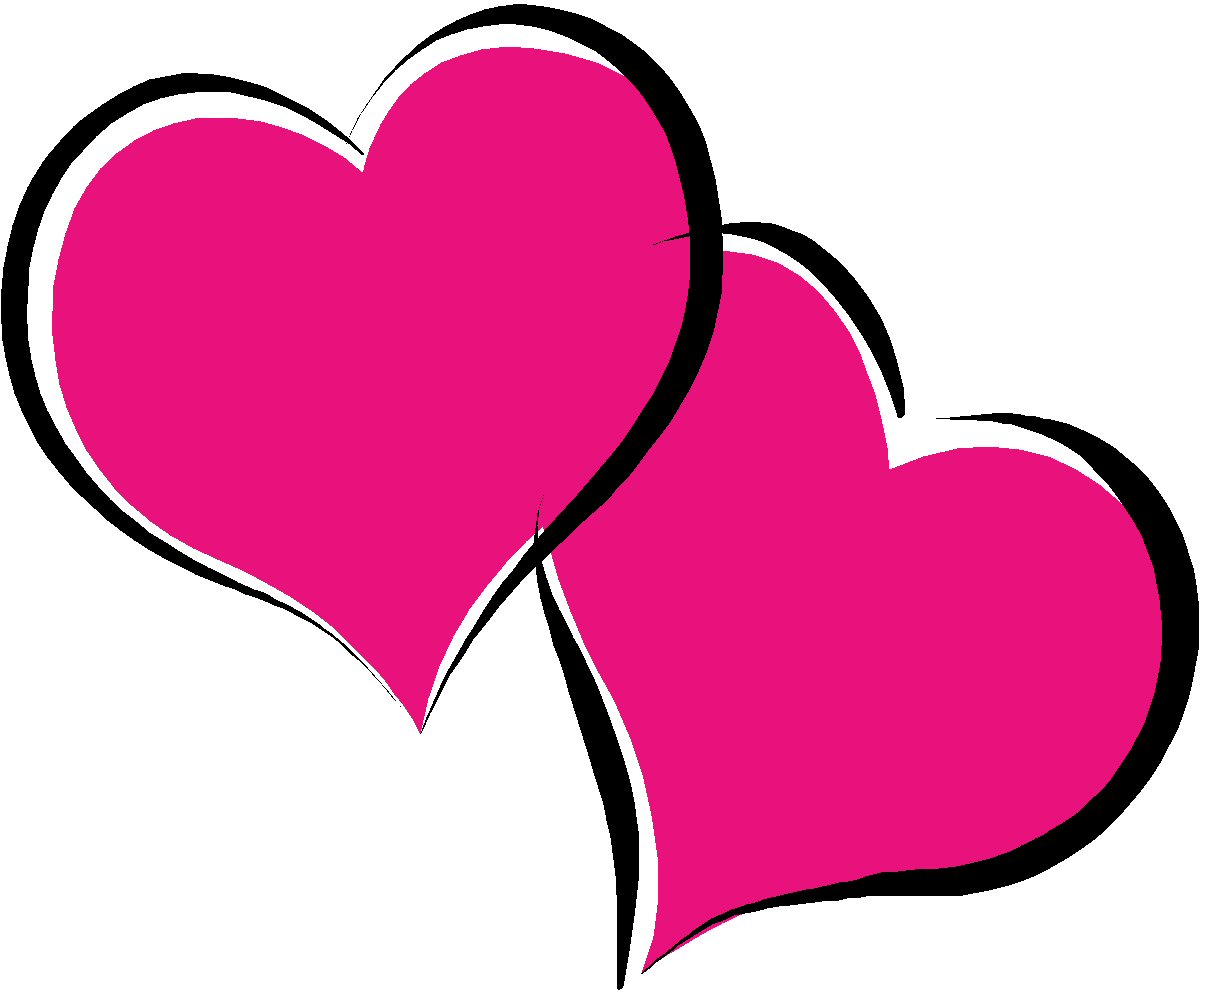 Valentine and heart clip art 2014 | Down-Valentine and heart clip art 2014 | Download Free Word, Excel, PDF-15